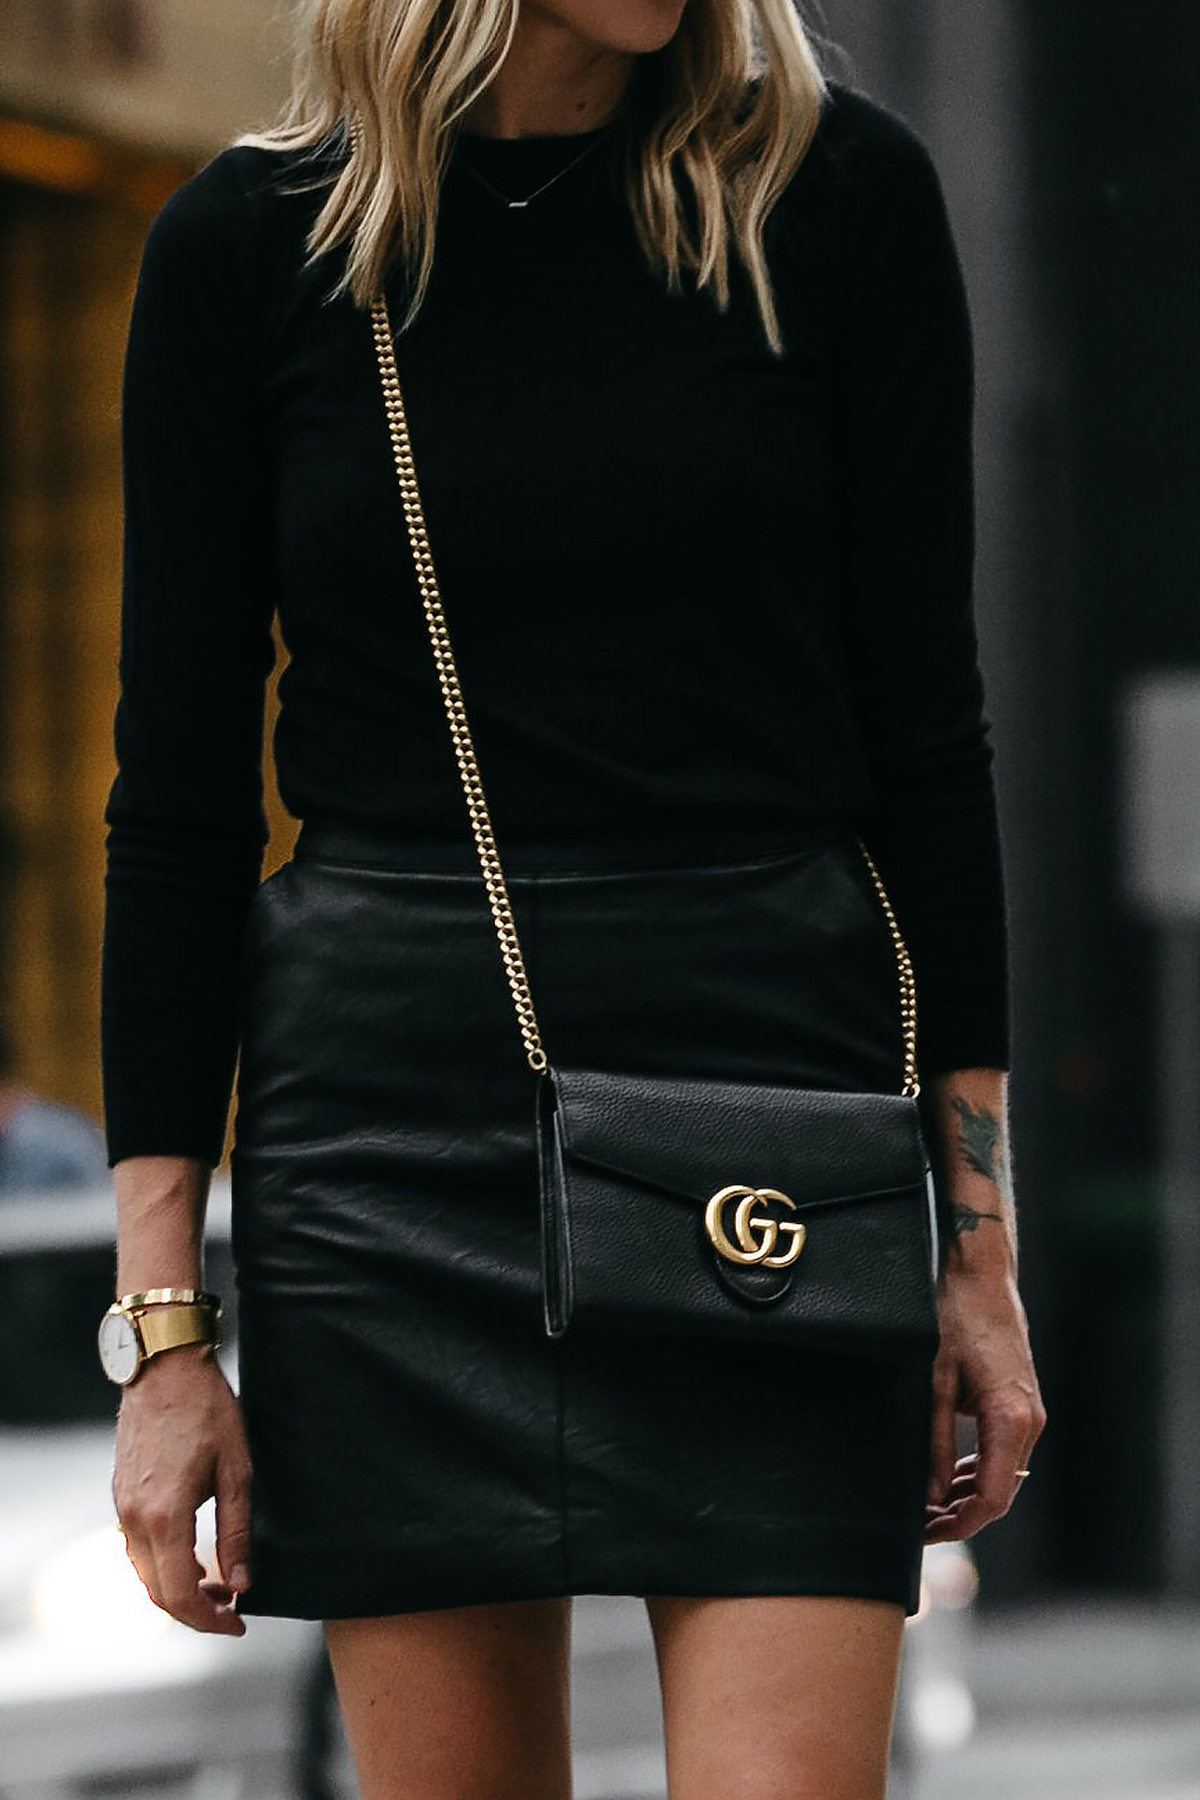 Club Monaco Black Sweater Topshop Black Leather Mini Skirt Outfit Gucci Marmont Handbag Fashion Jackson Dallas Blogger Fashion Blogger Street Style